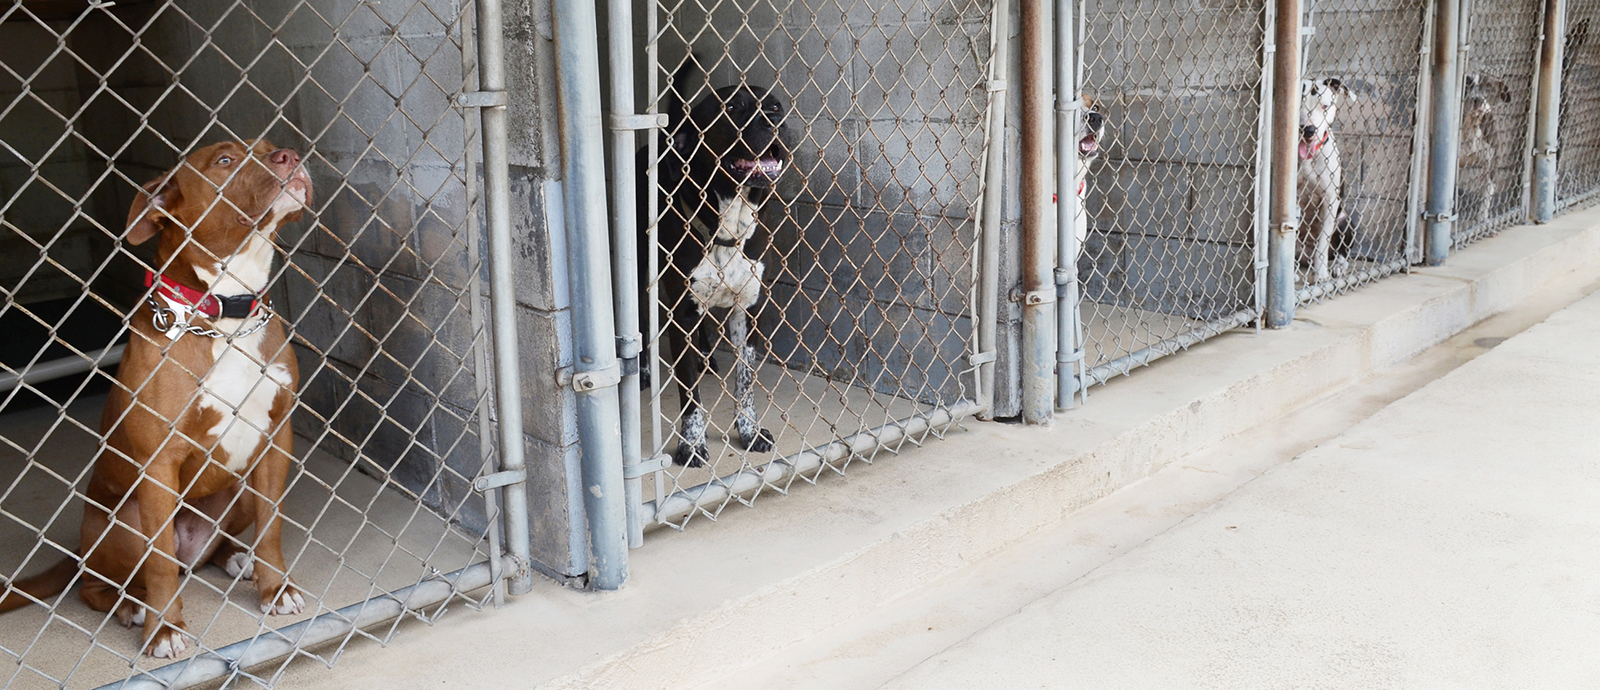 rescuing a dog from a shelter